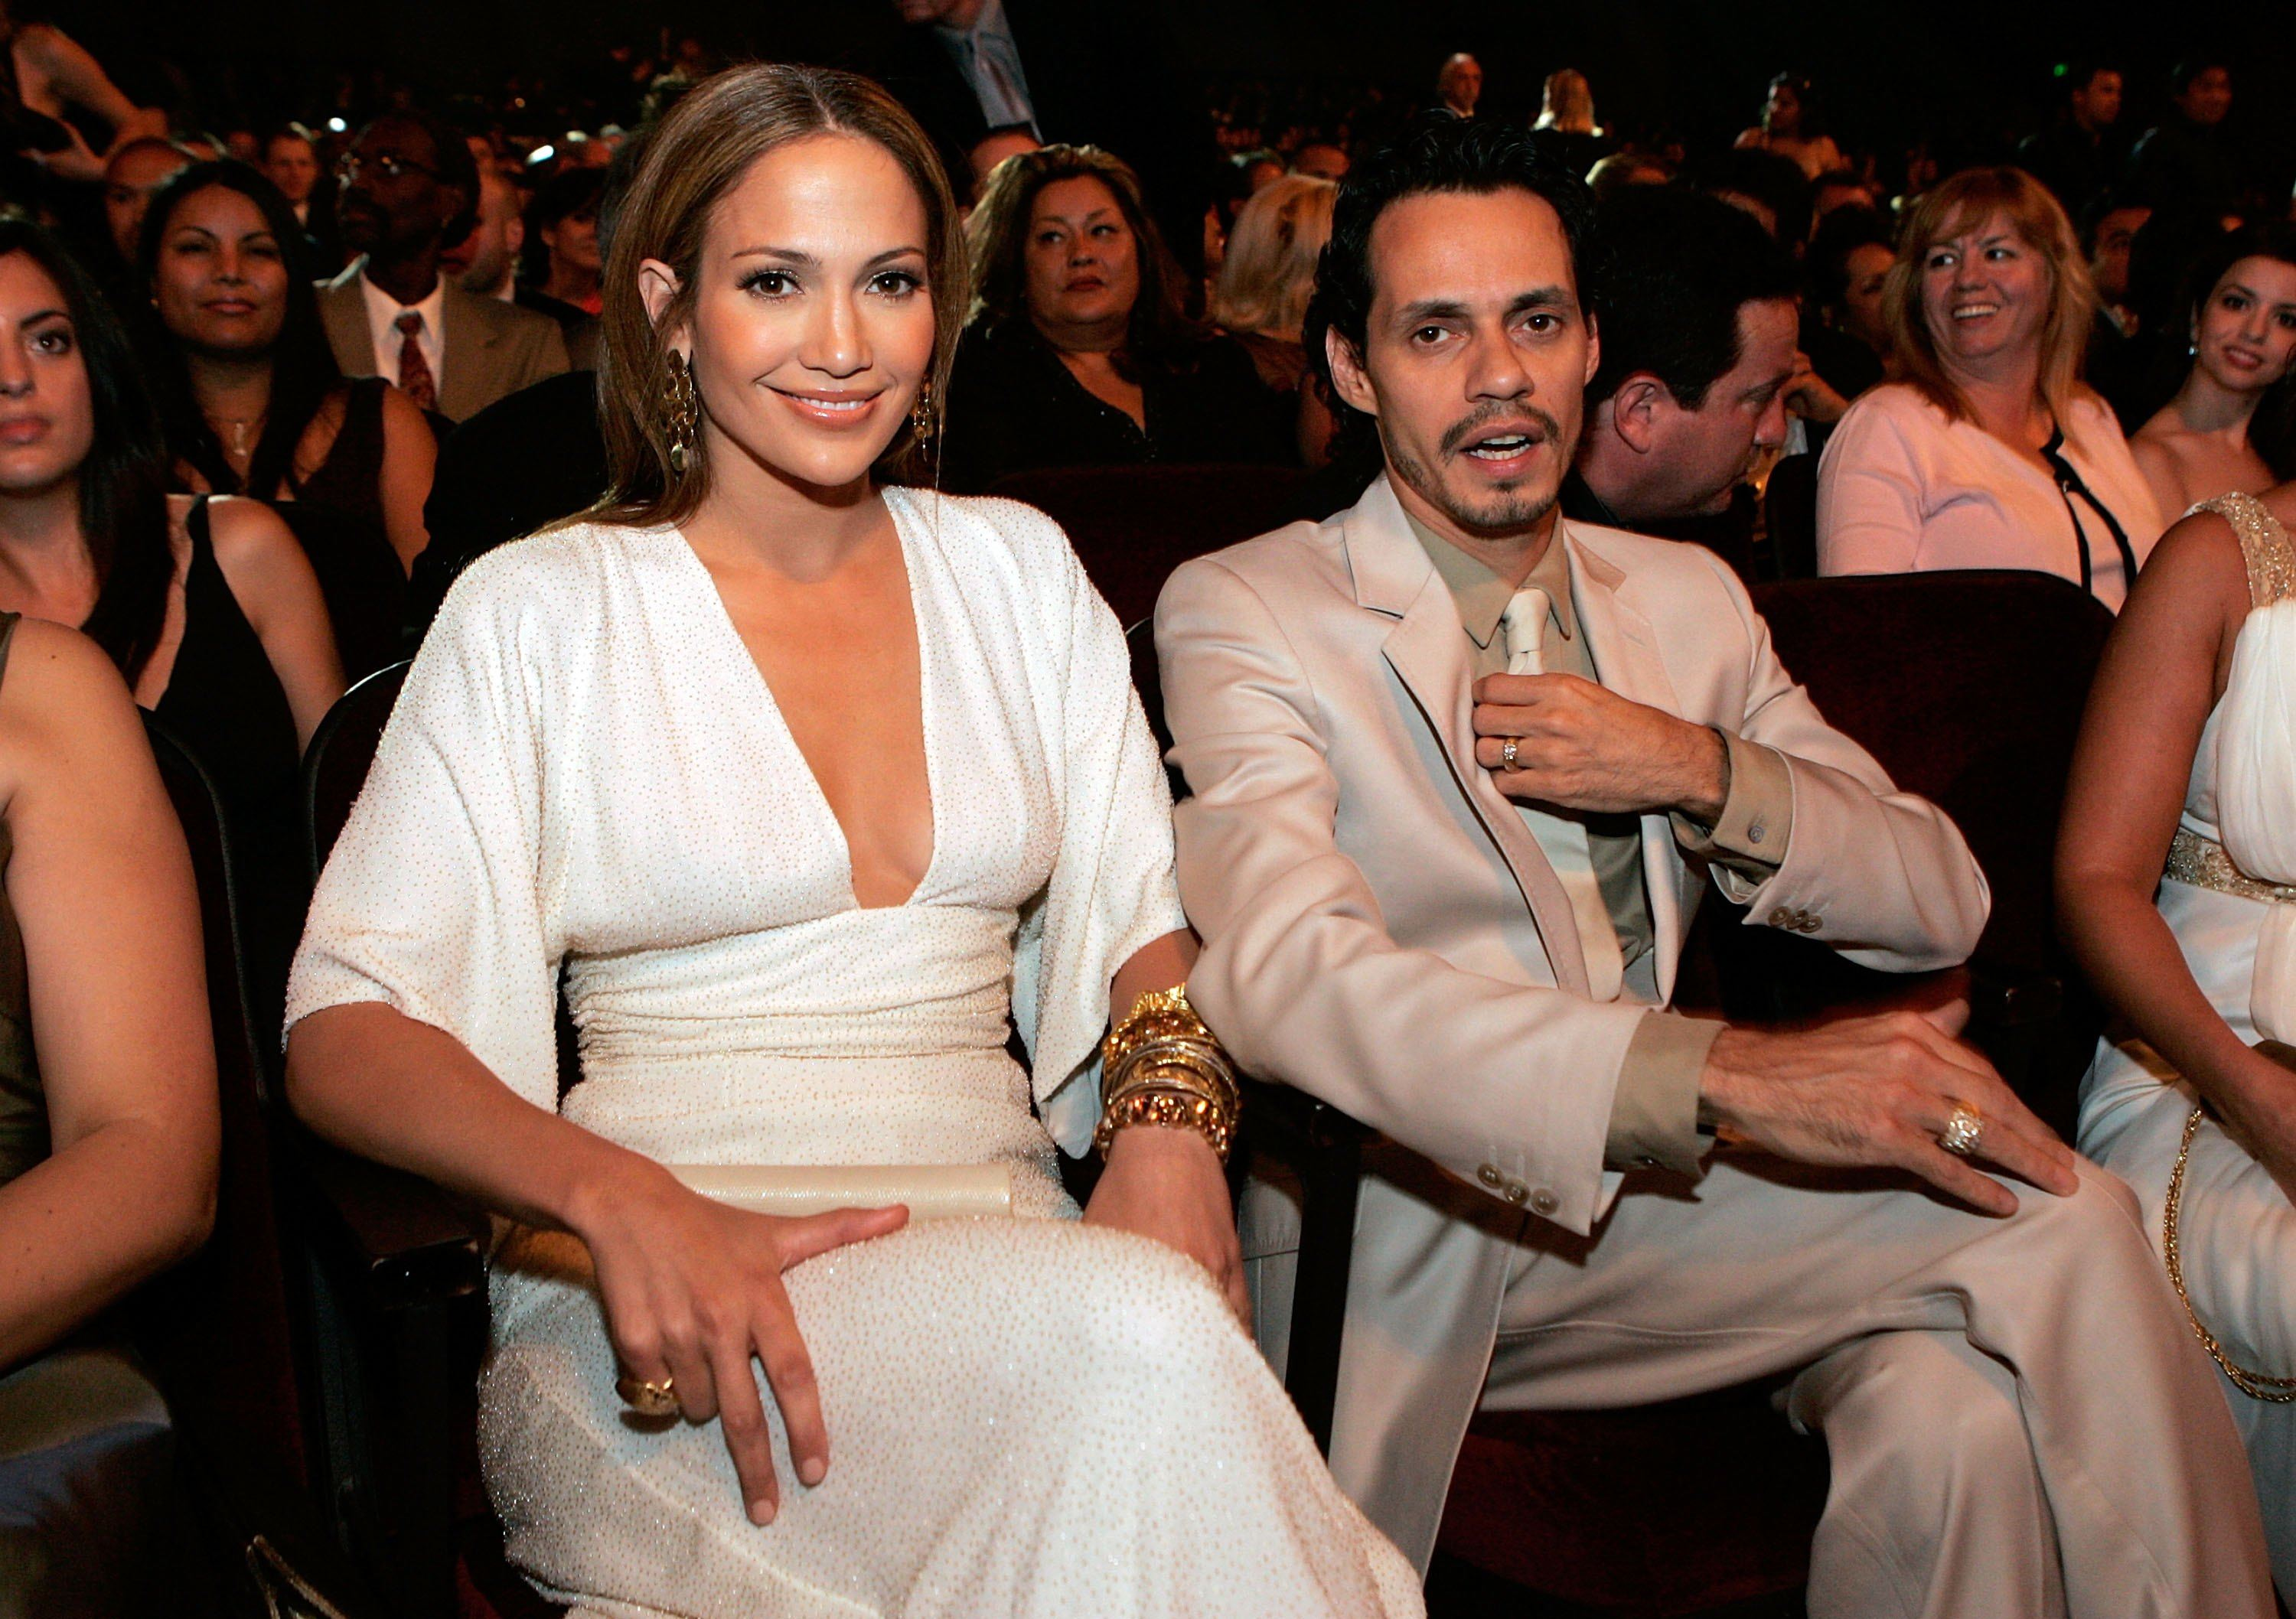 Jennifer Lopez and Marc Anthony the audience at the 2006 NCLR ALMA Awards at the Shrine Auditorium on May 7, 2006 in Los Angeles, California